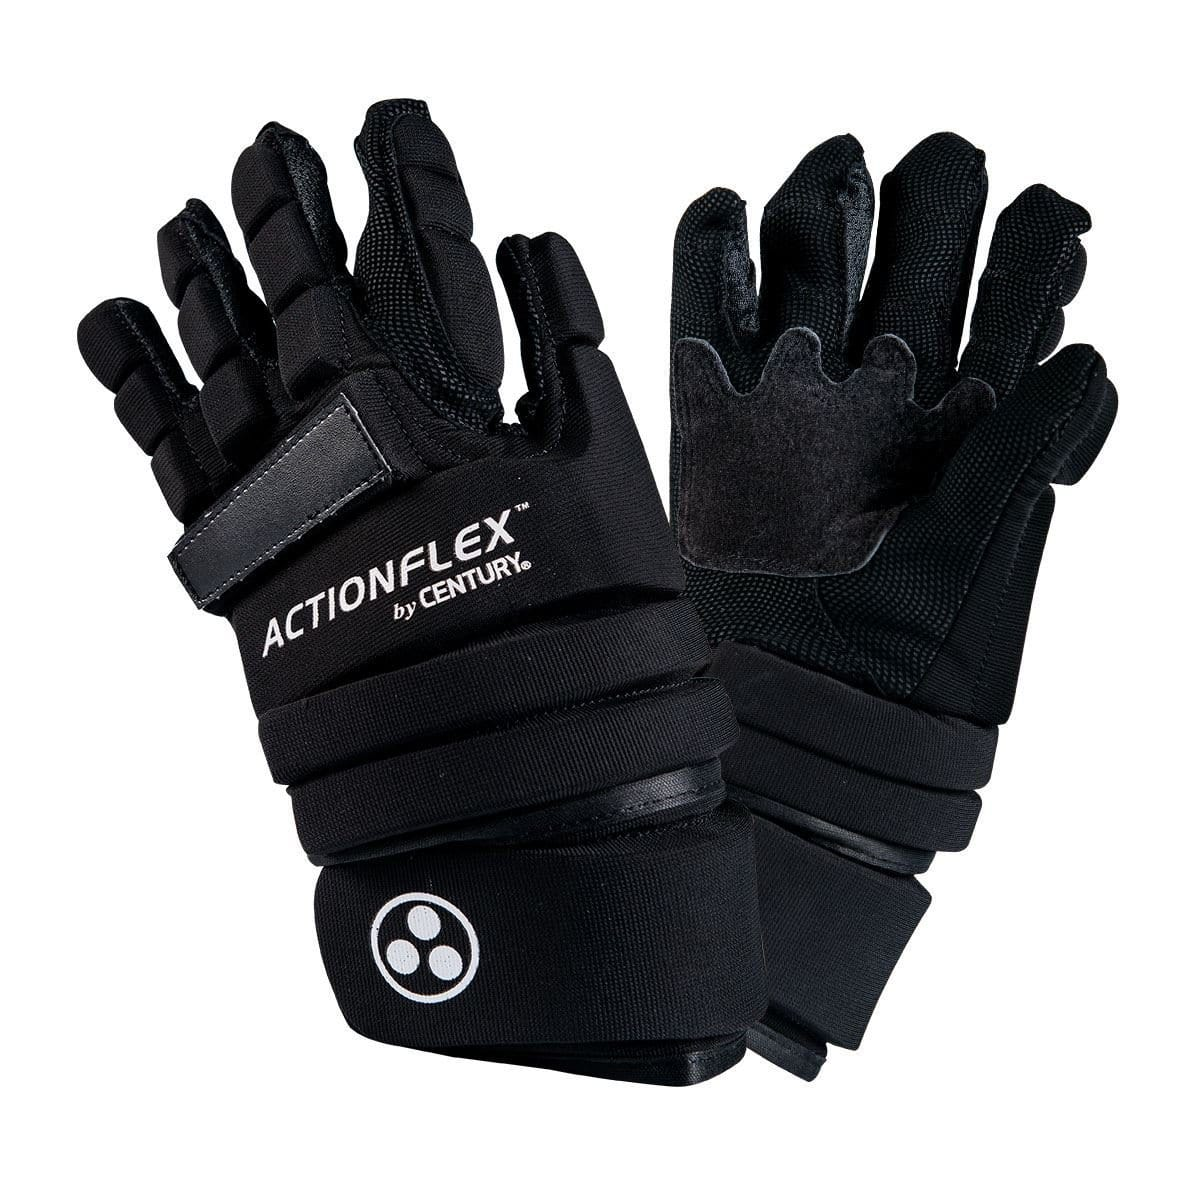 ActionFlex Gloves by Century Training Glove - BlackBeltShop